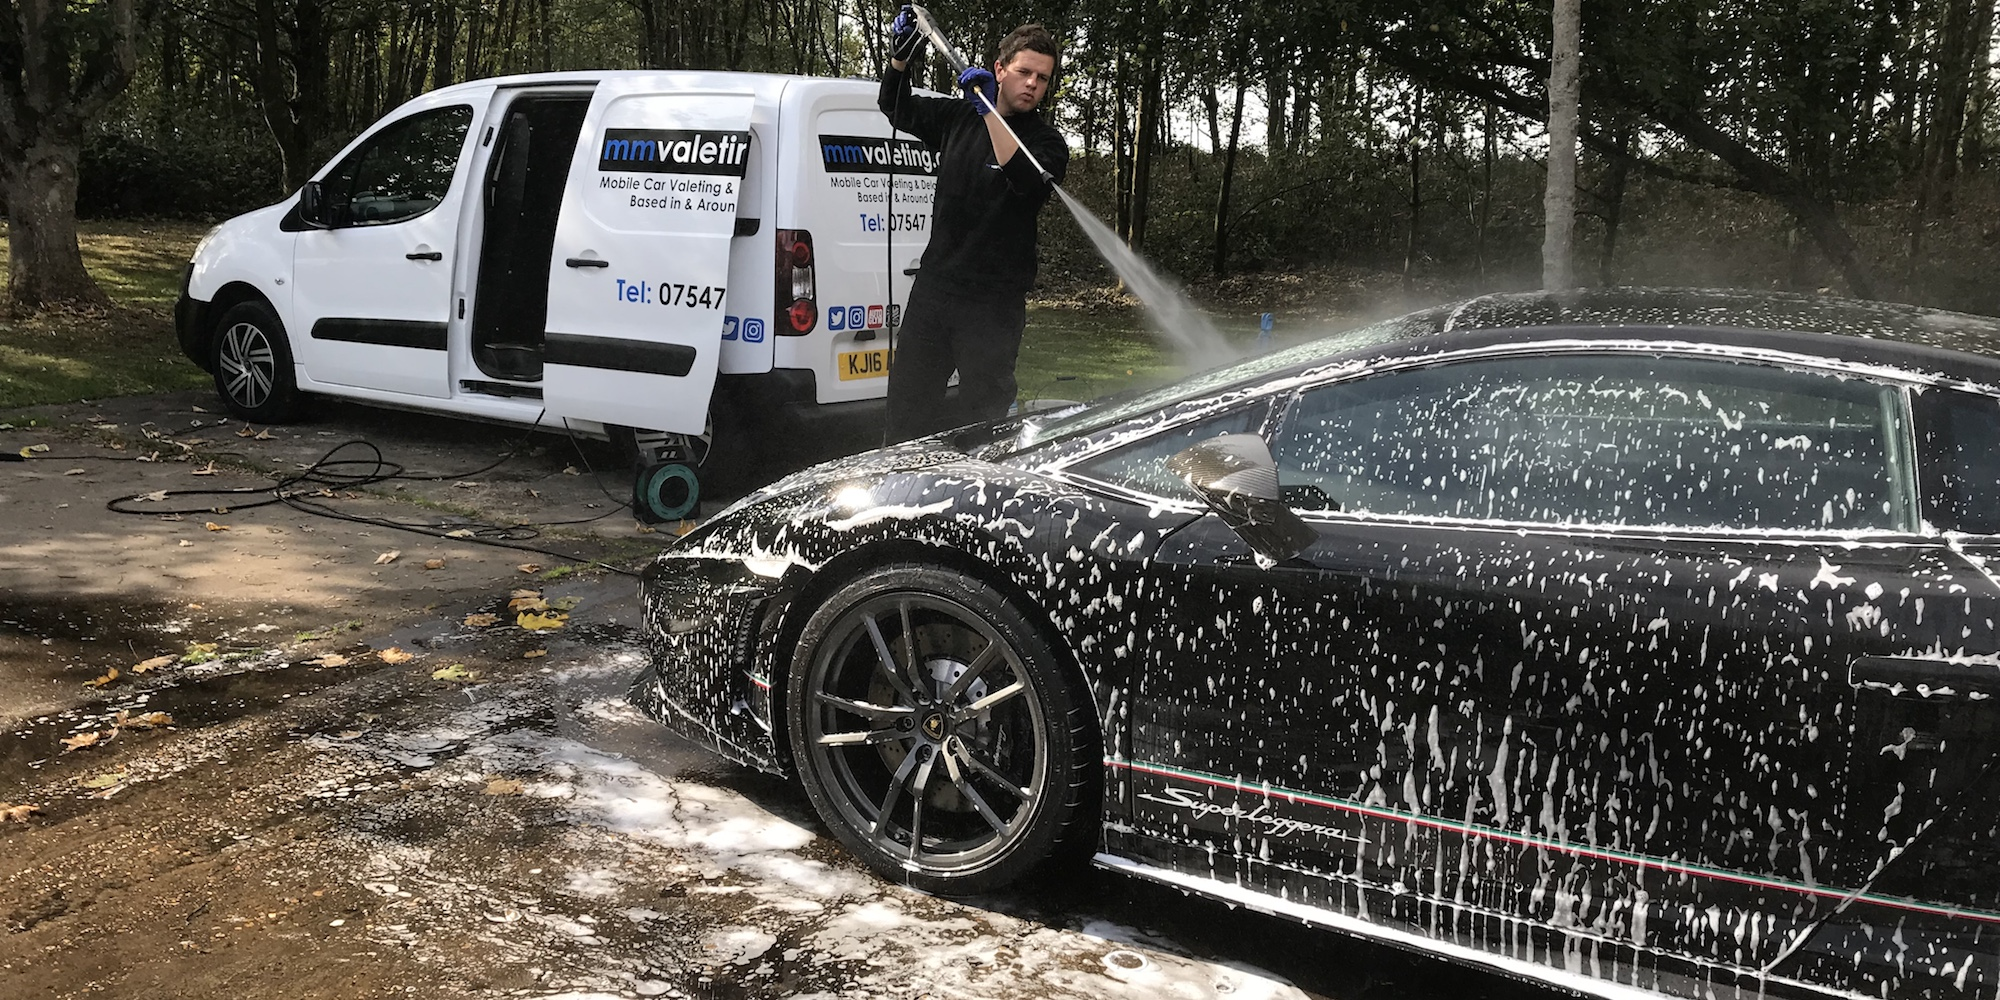 mmvaleting car valeting in Buckinghamshire